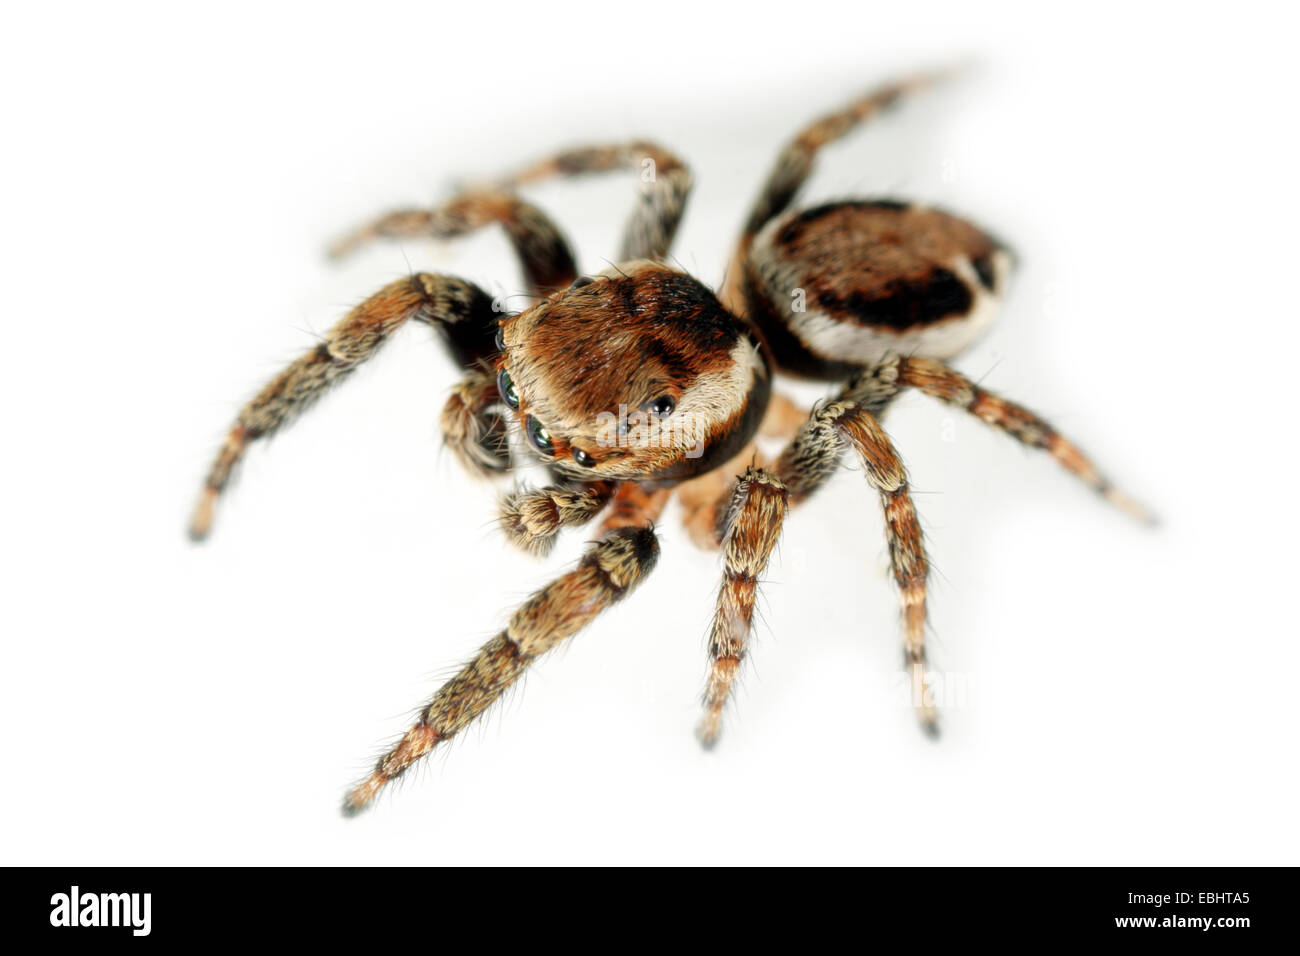 A male jumping spider (Evarcha falcata) on white background. Jumping spiders belong to the family Salticidae. - Stock Image